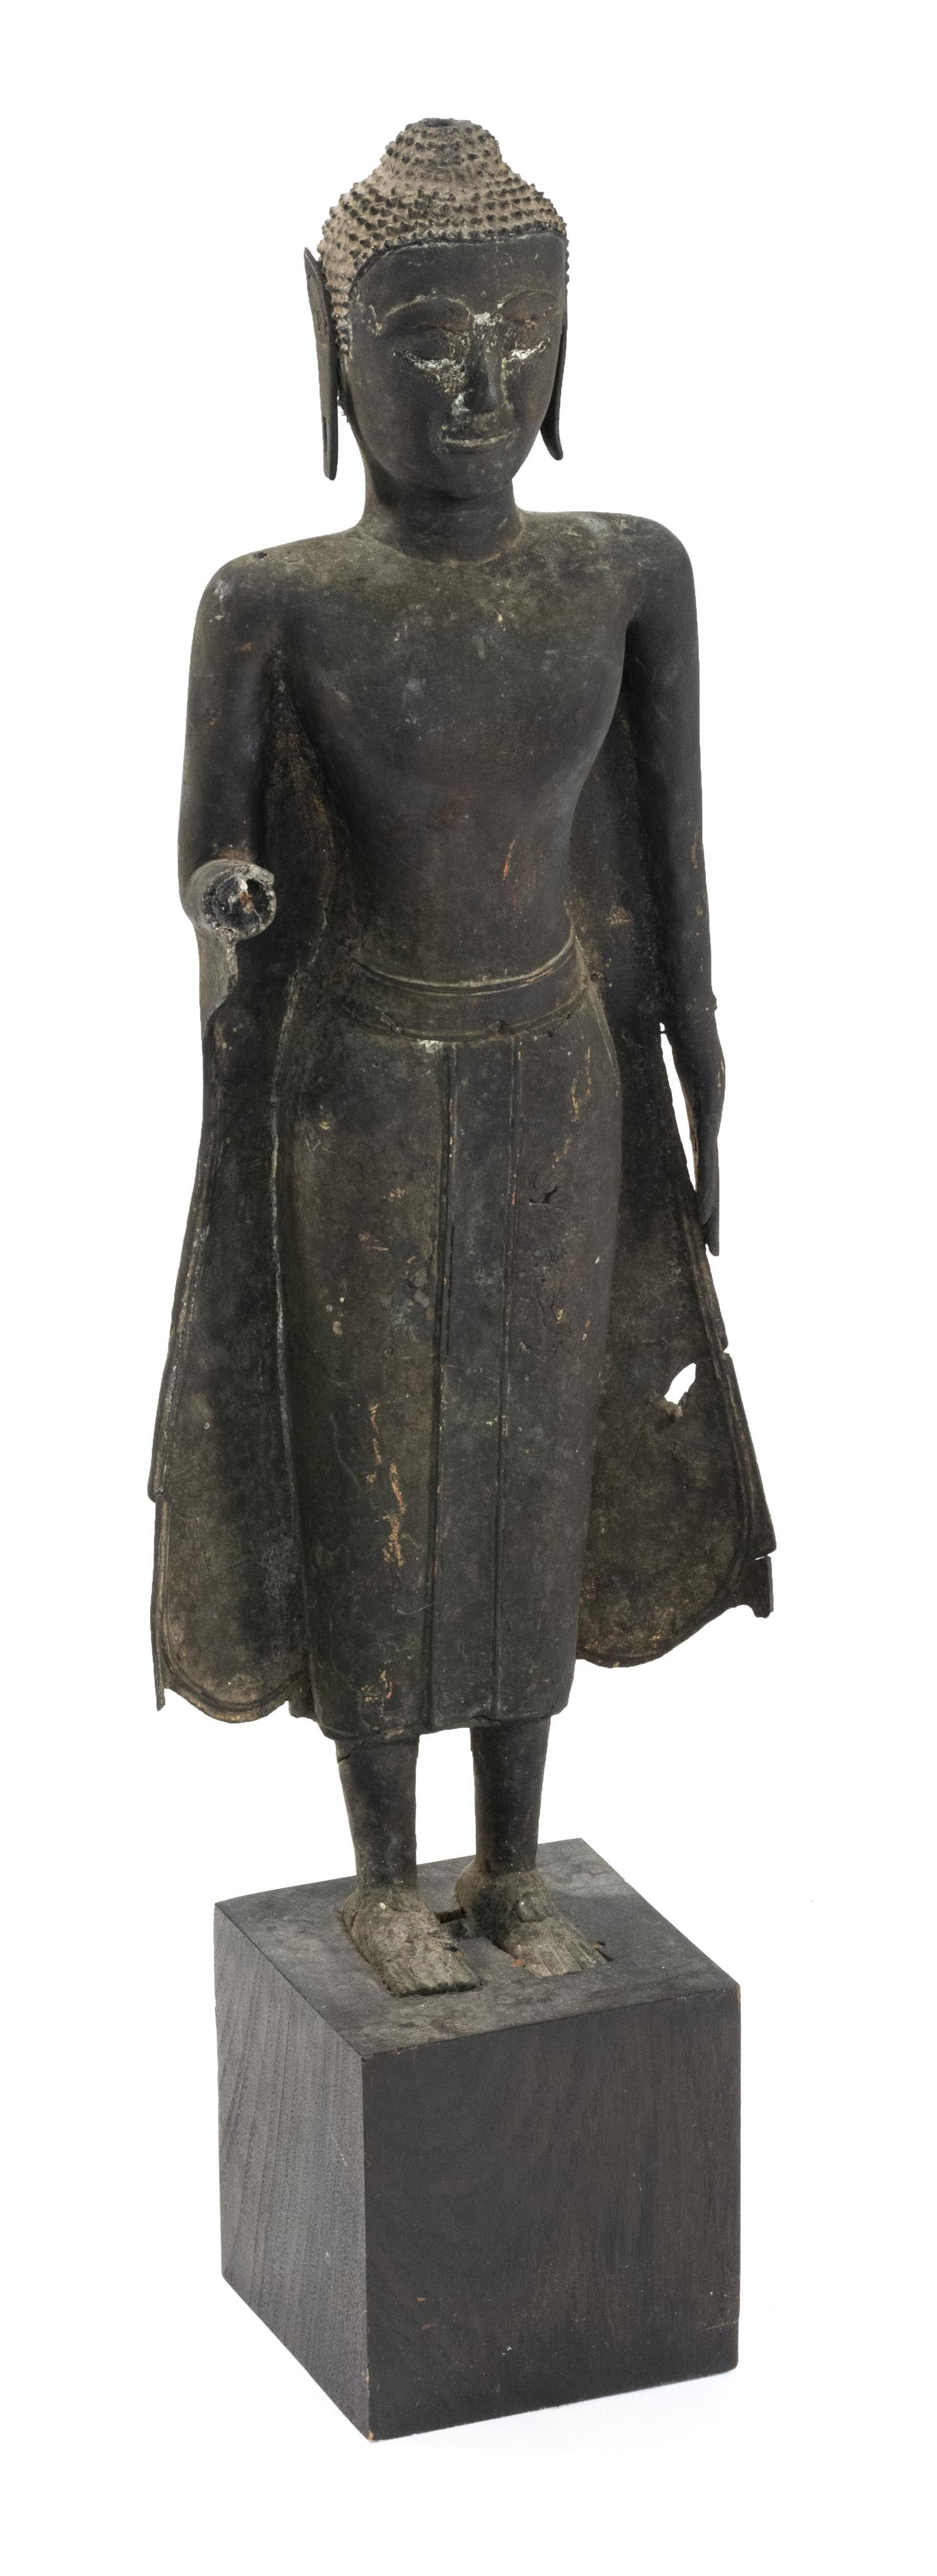 "THAI BRONZE FIGURE OF BUDDHA Standing and in a flared skirt. Height 27"", not inclusive of base."